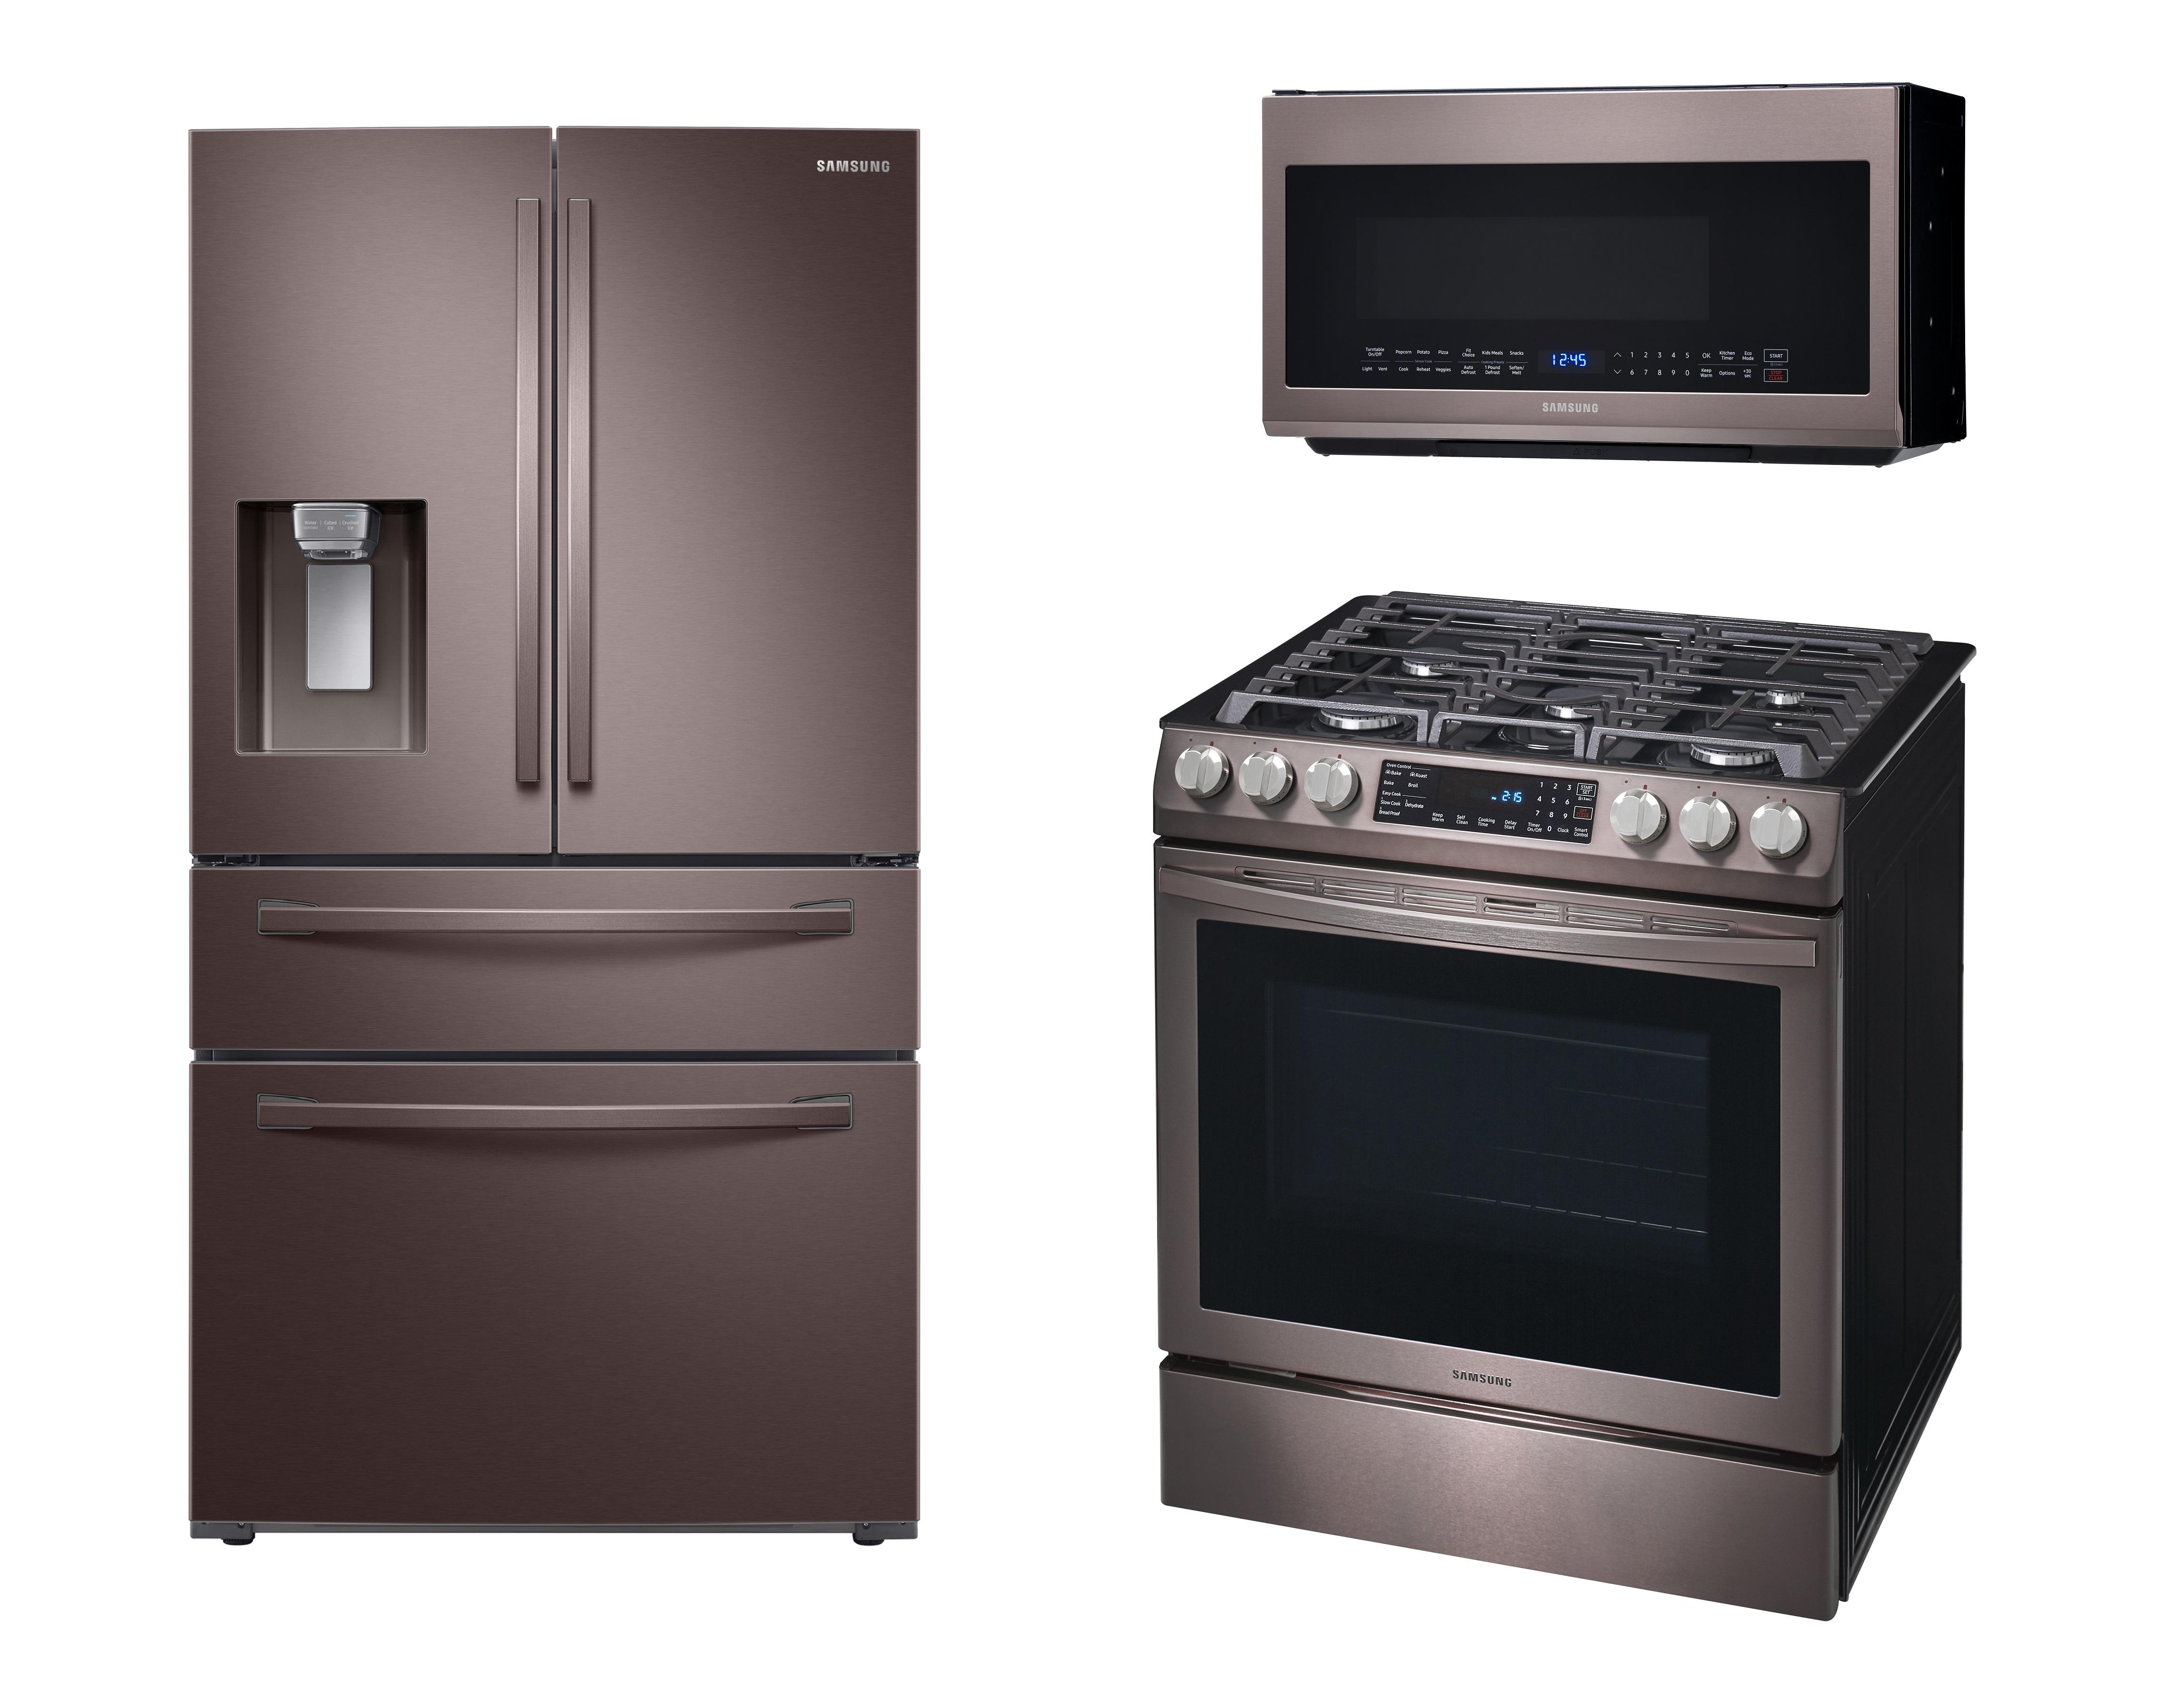 samsung-tuscan-stainless-steel-refrigerator-range-oven-microwave